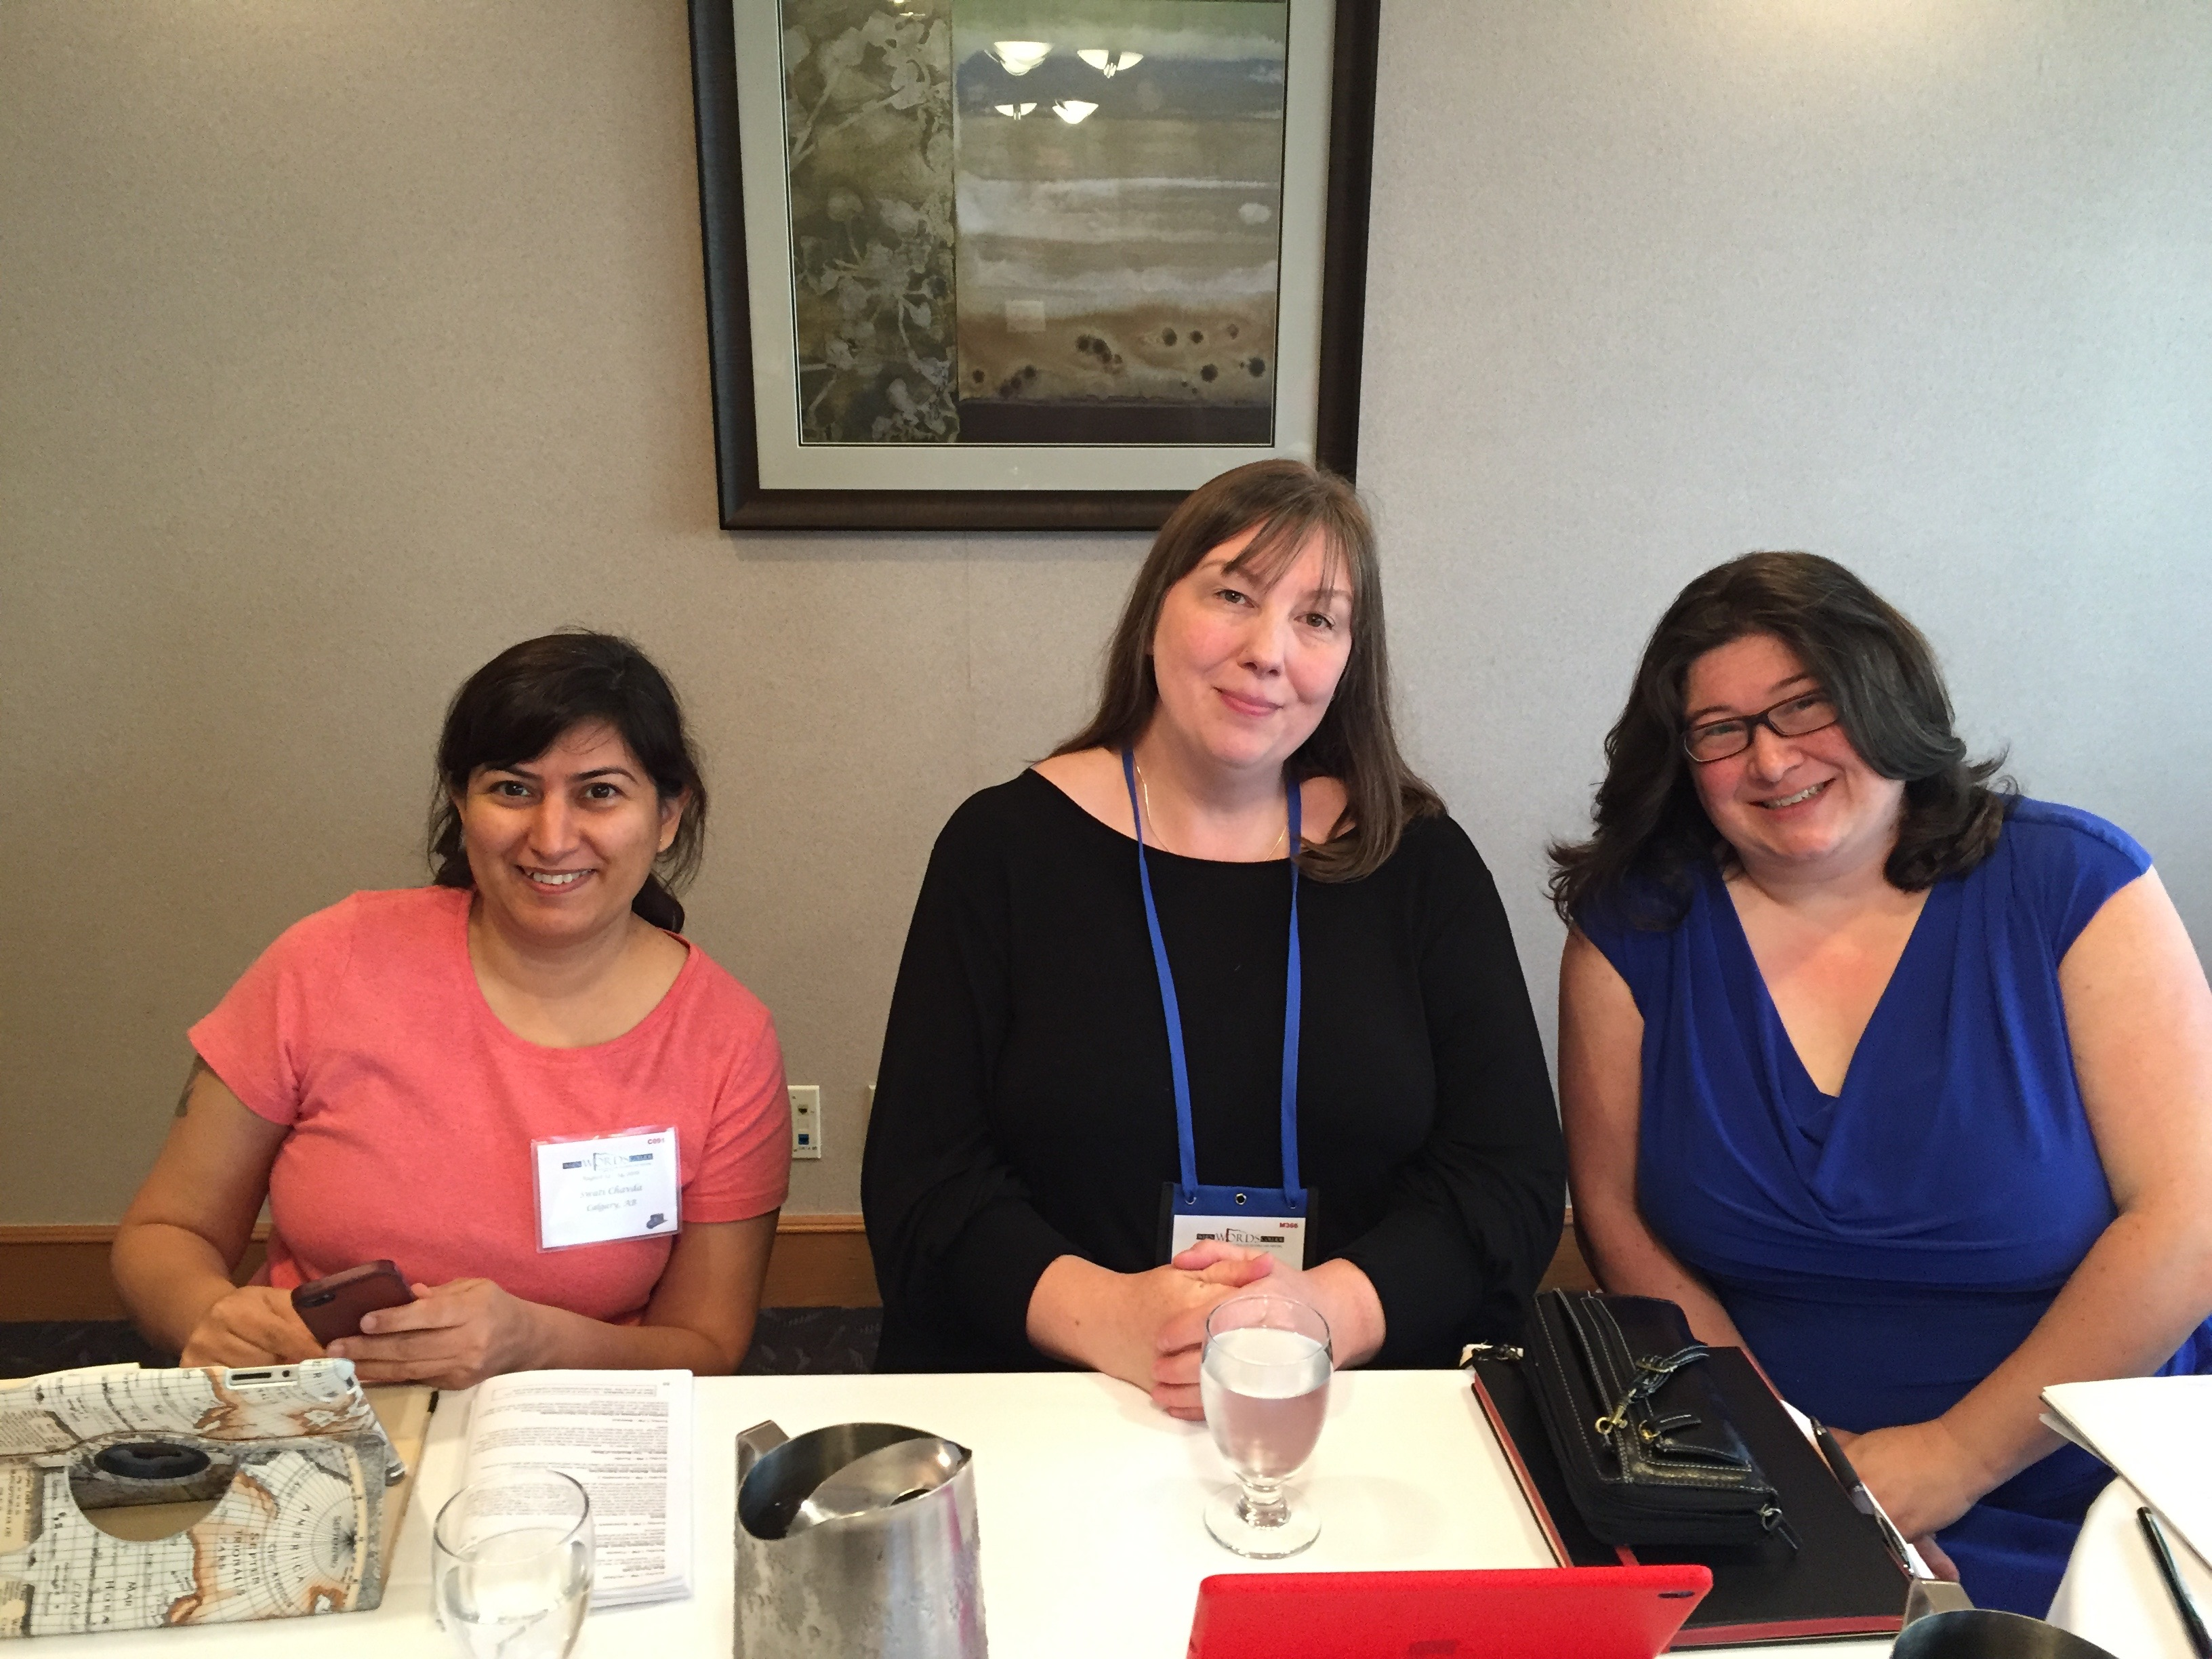 Swati Chavda, C.S. MacCath, and Claire McCague